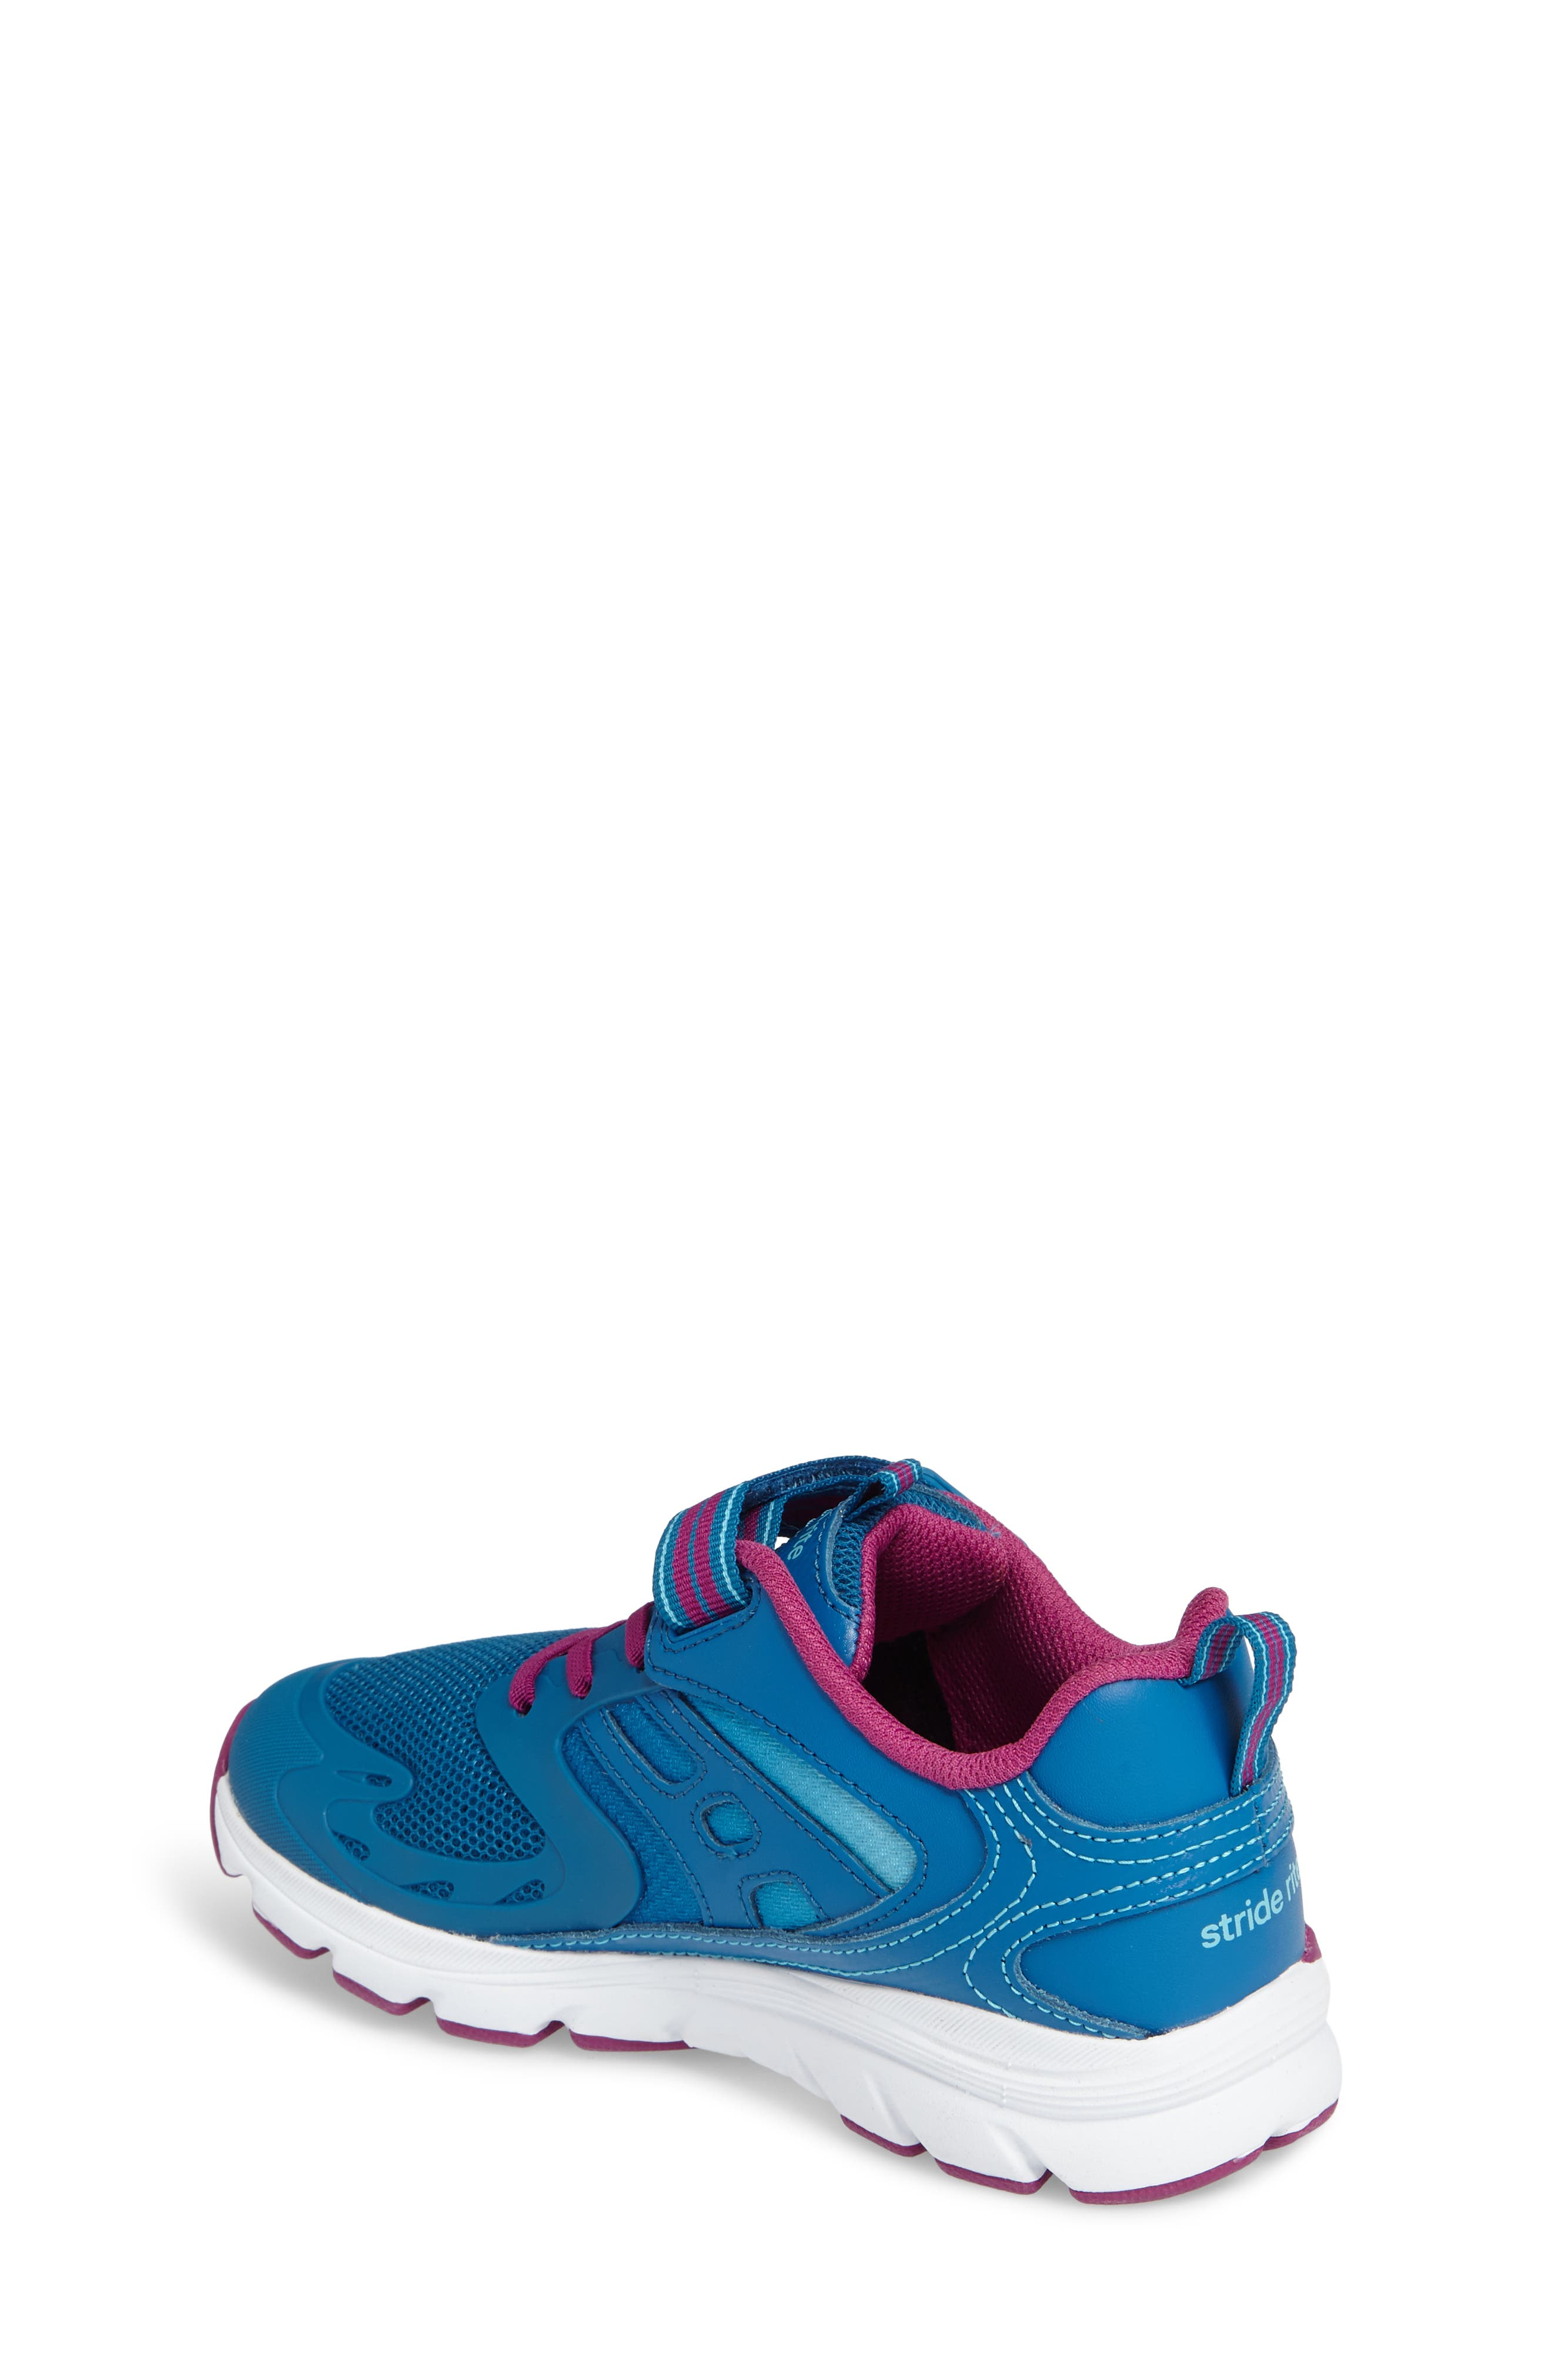 Alternate Image 2  - Stride Rite Made 2 Play® Cannan Sneaker (Baby, Walker, Toddler & Little Kid)